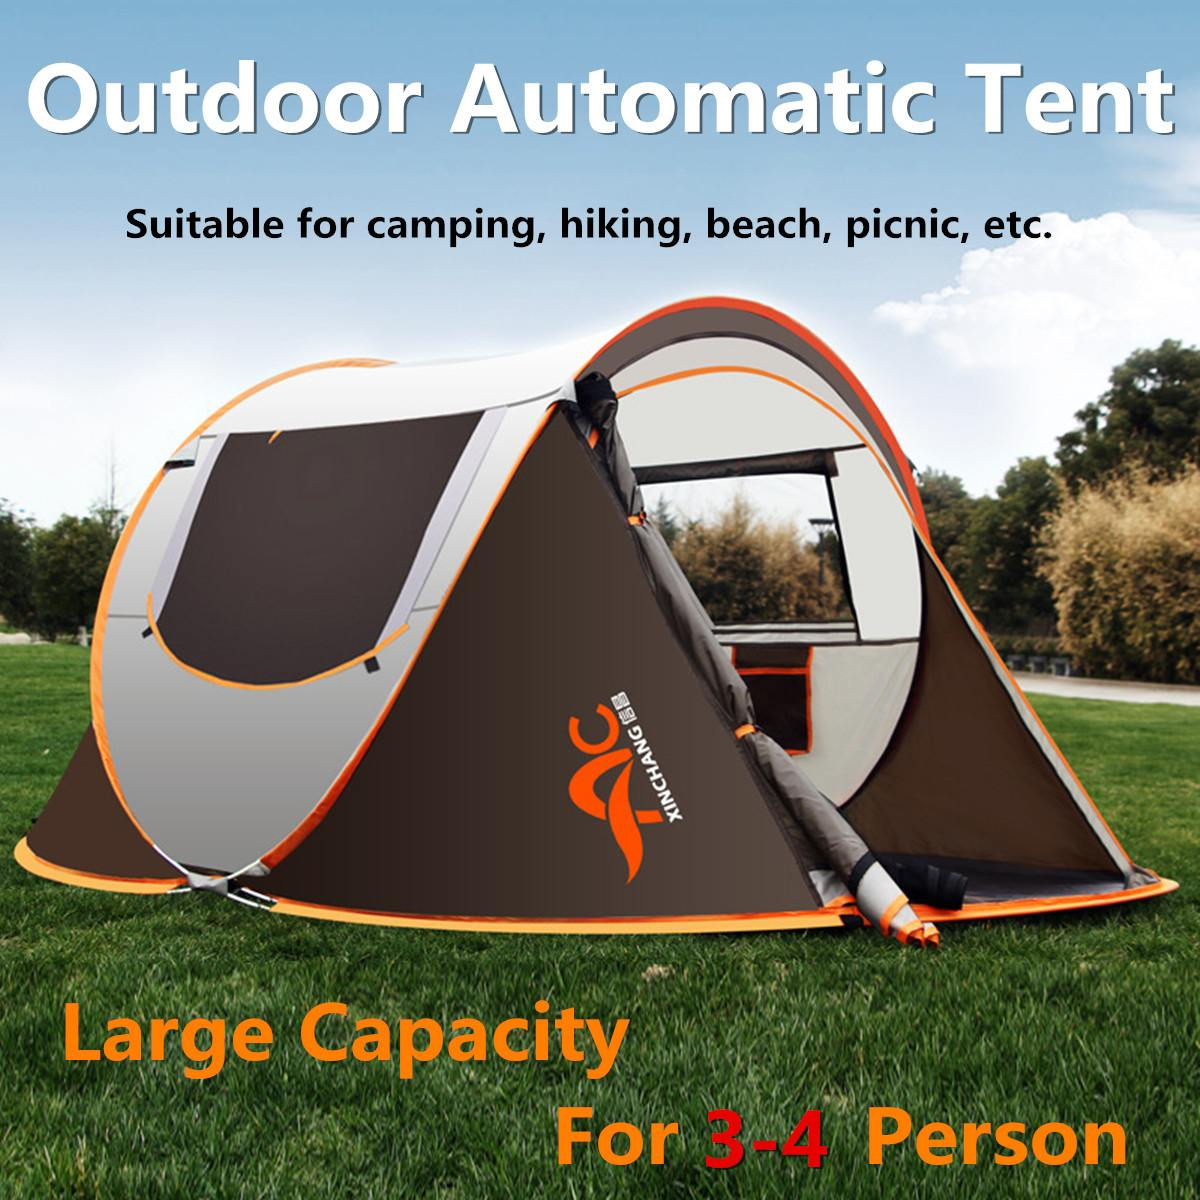 for 3 Seasons 3-4 Person Waterproof Automatic Tent Single Layer Family Outdoor Camping Hiking Durable Foldable Portable Activityfor 3 Seasons 3-4 Person Waterproof Automatic Tent Single Layer Family Outdoor Camping Hiking Durable Foldable Portable Activity